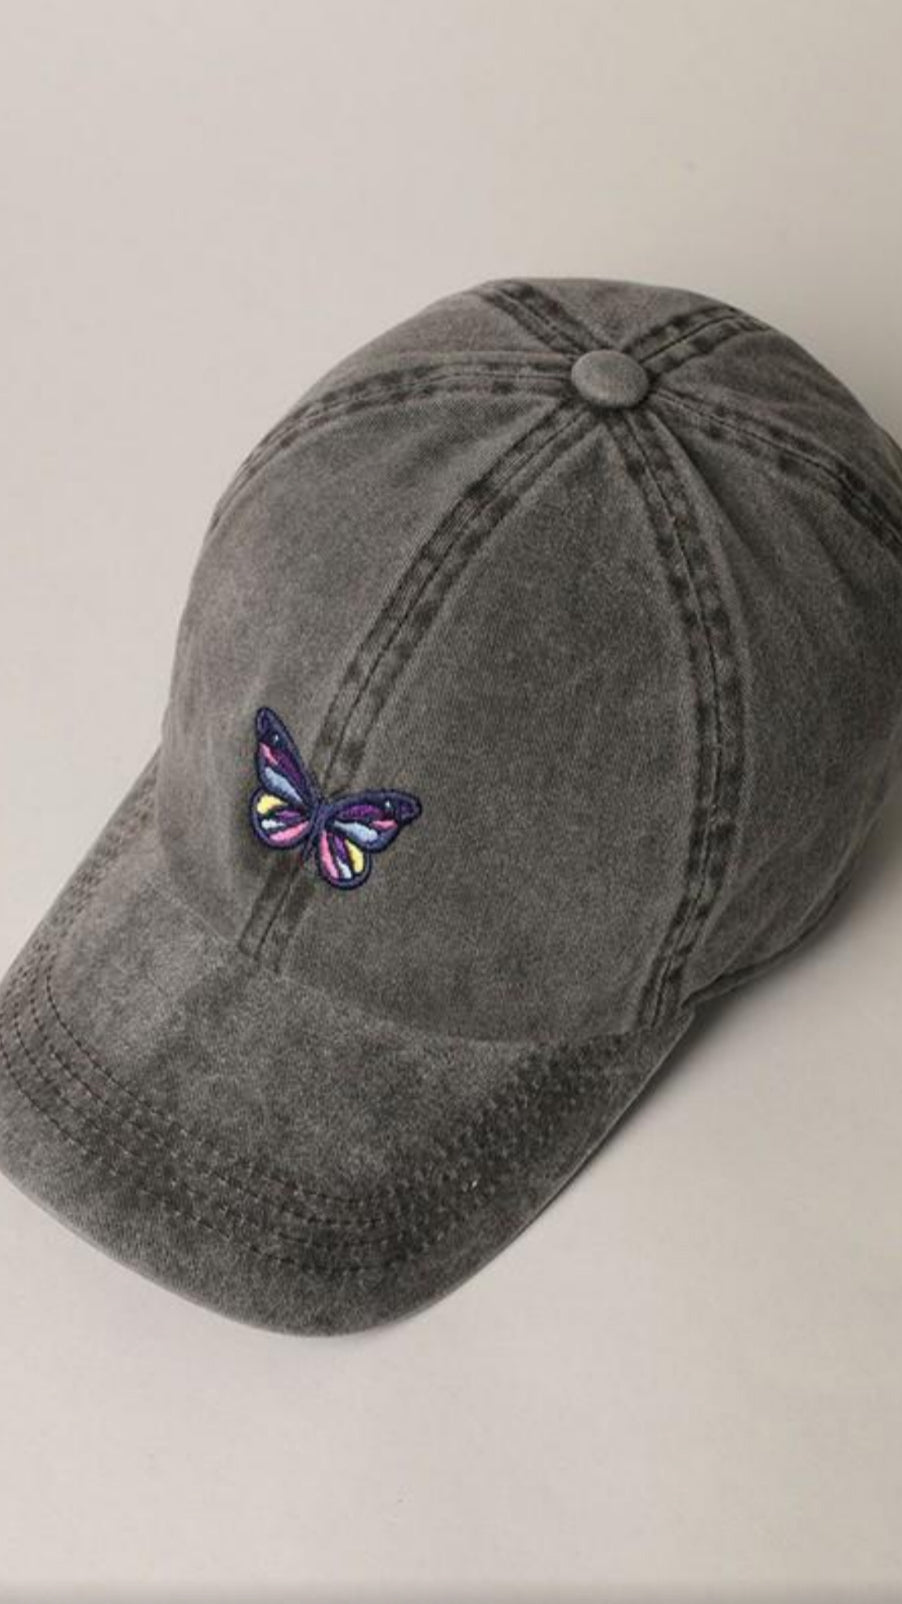 Butterfly Baseball Cap - Black